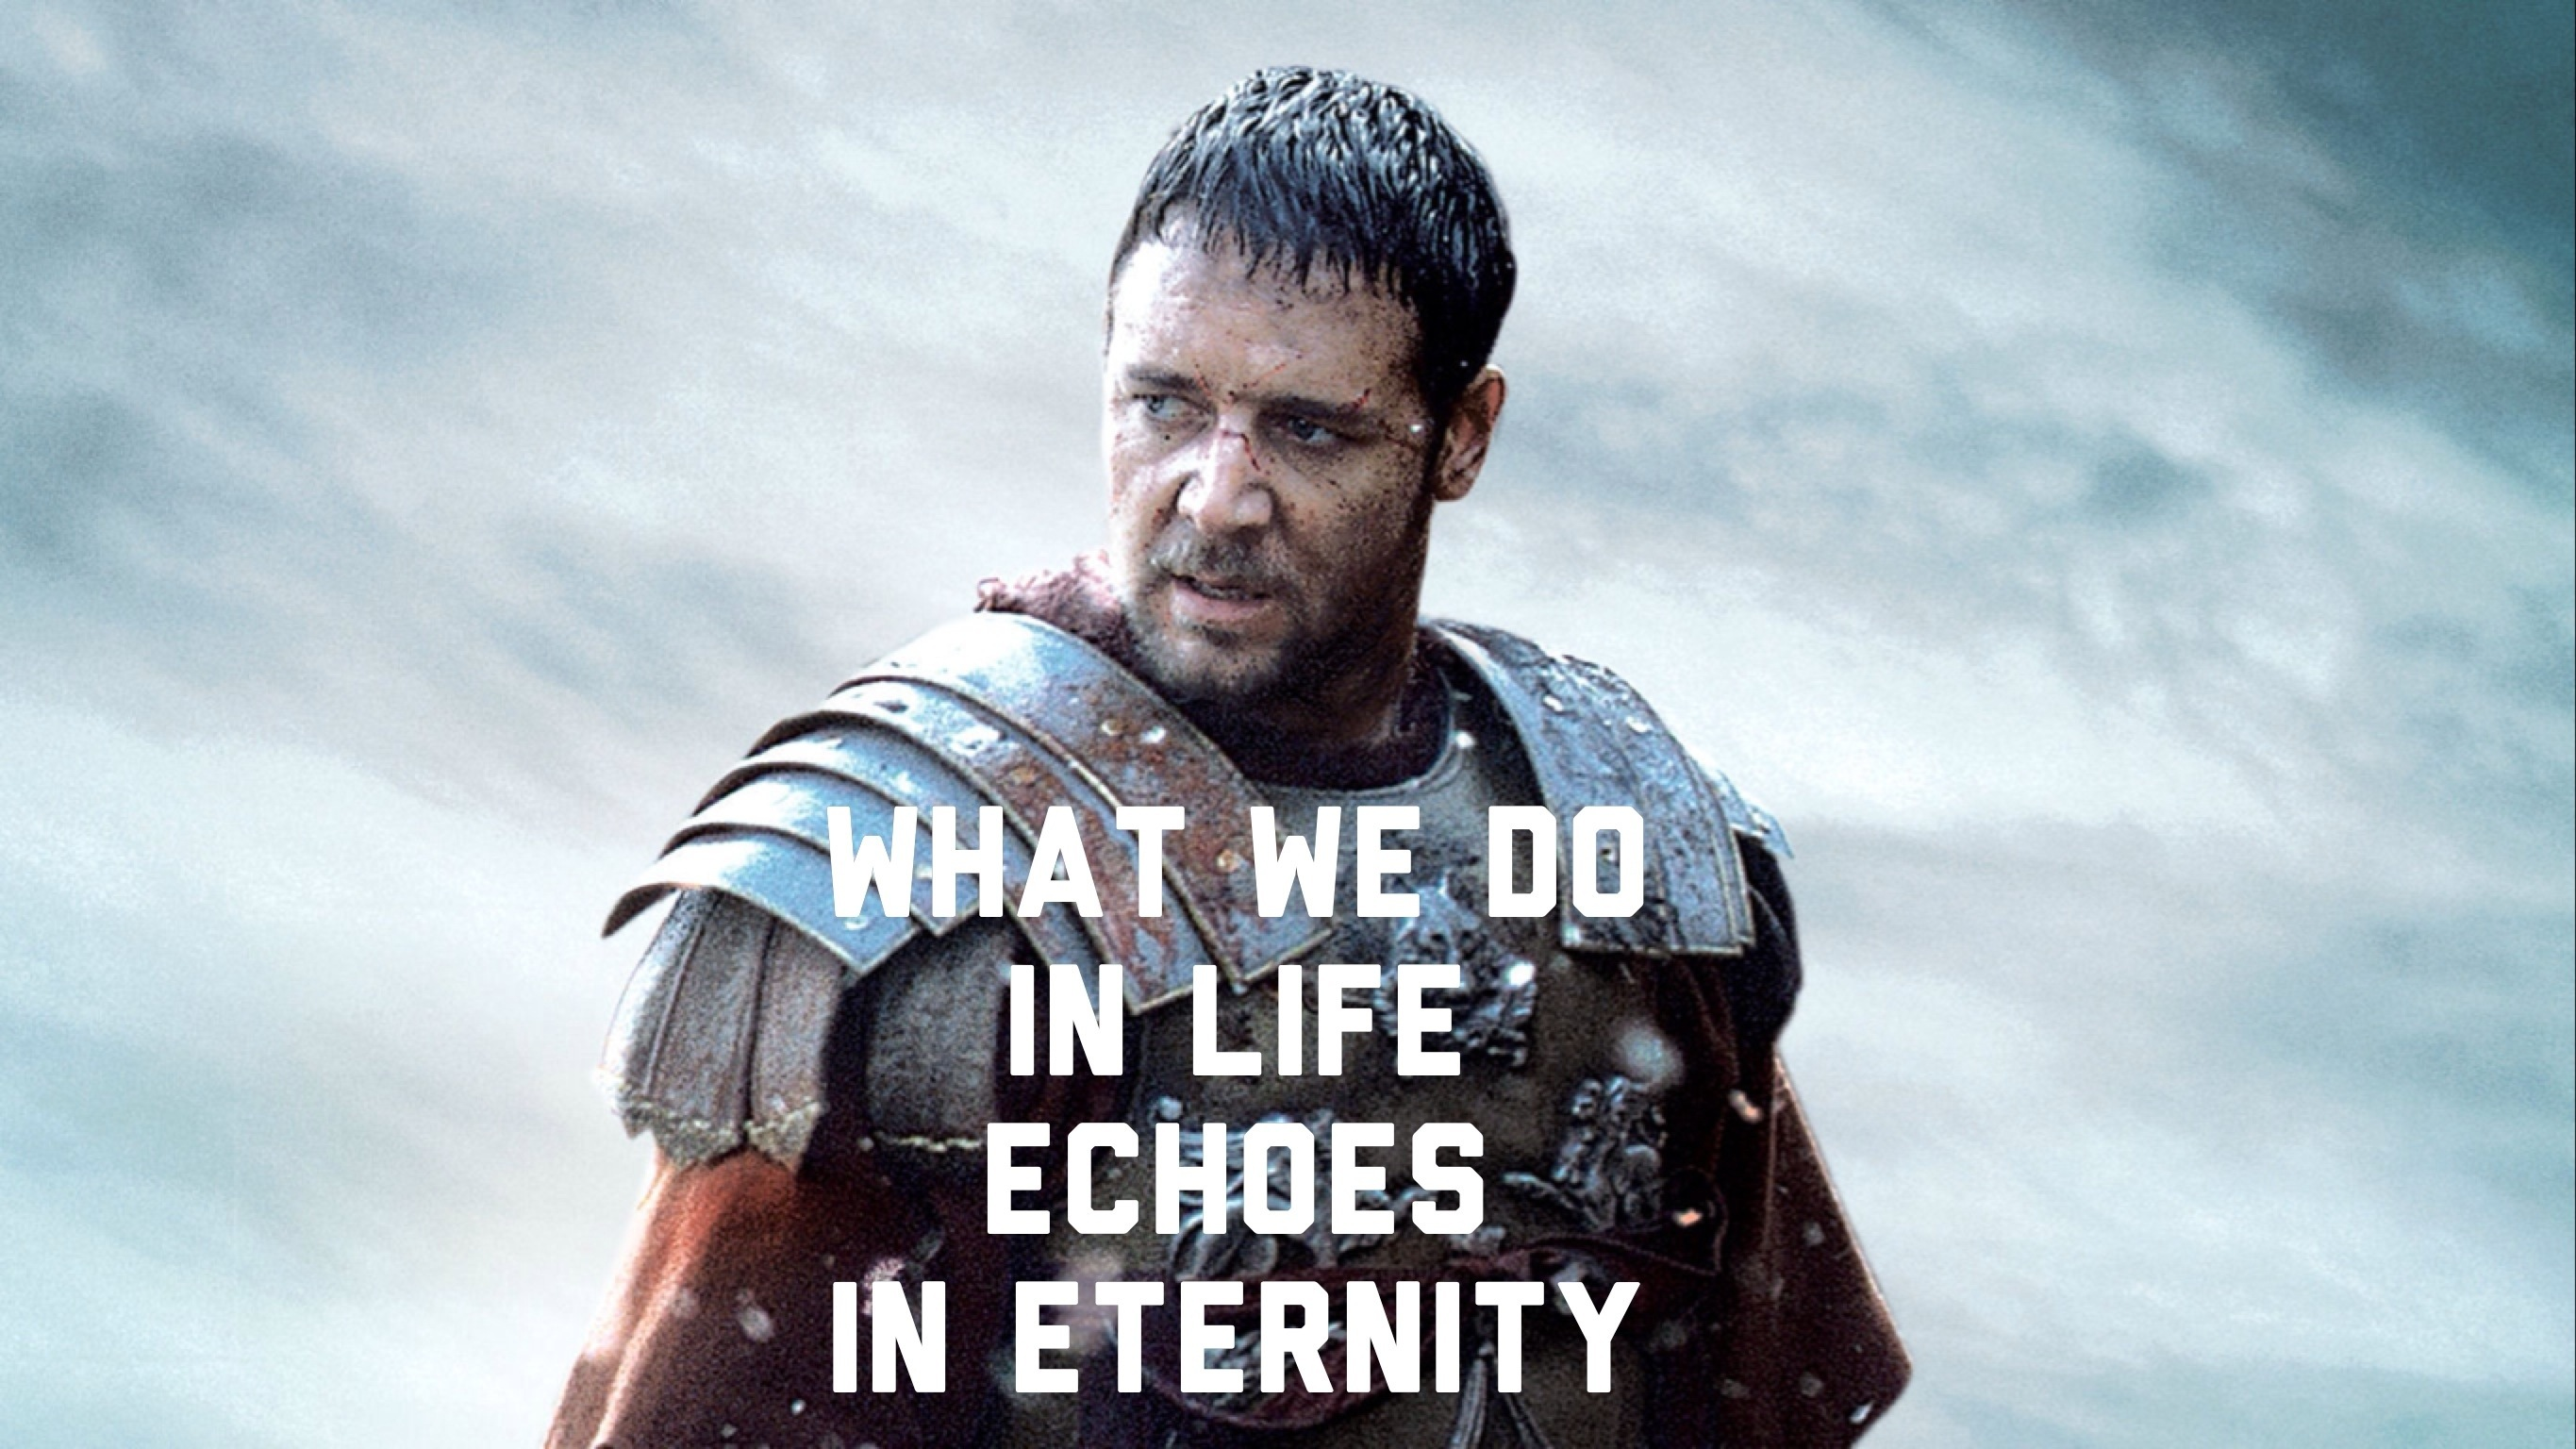 What we do in life echoes in eternity what space do we create in